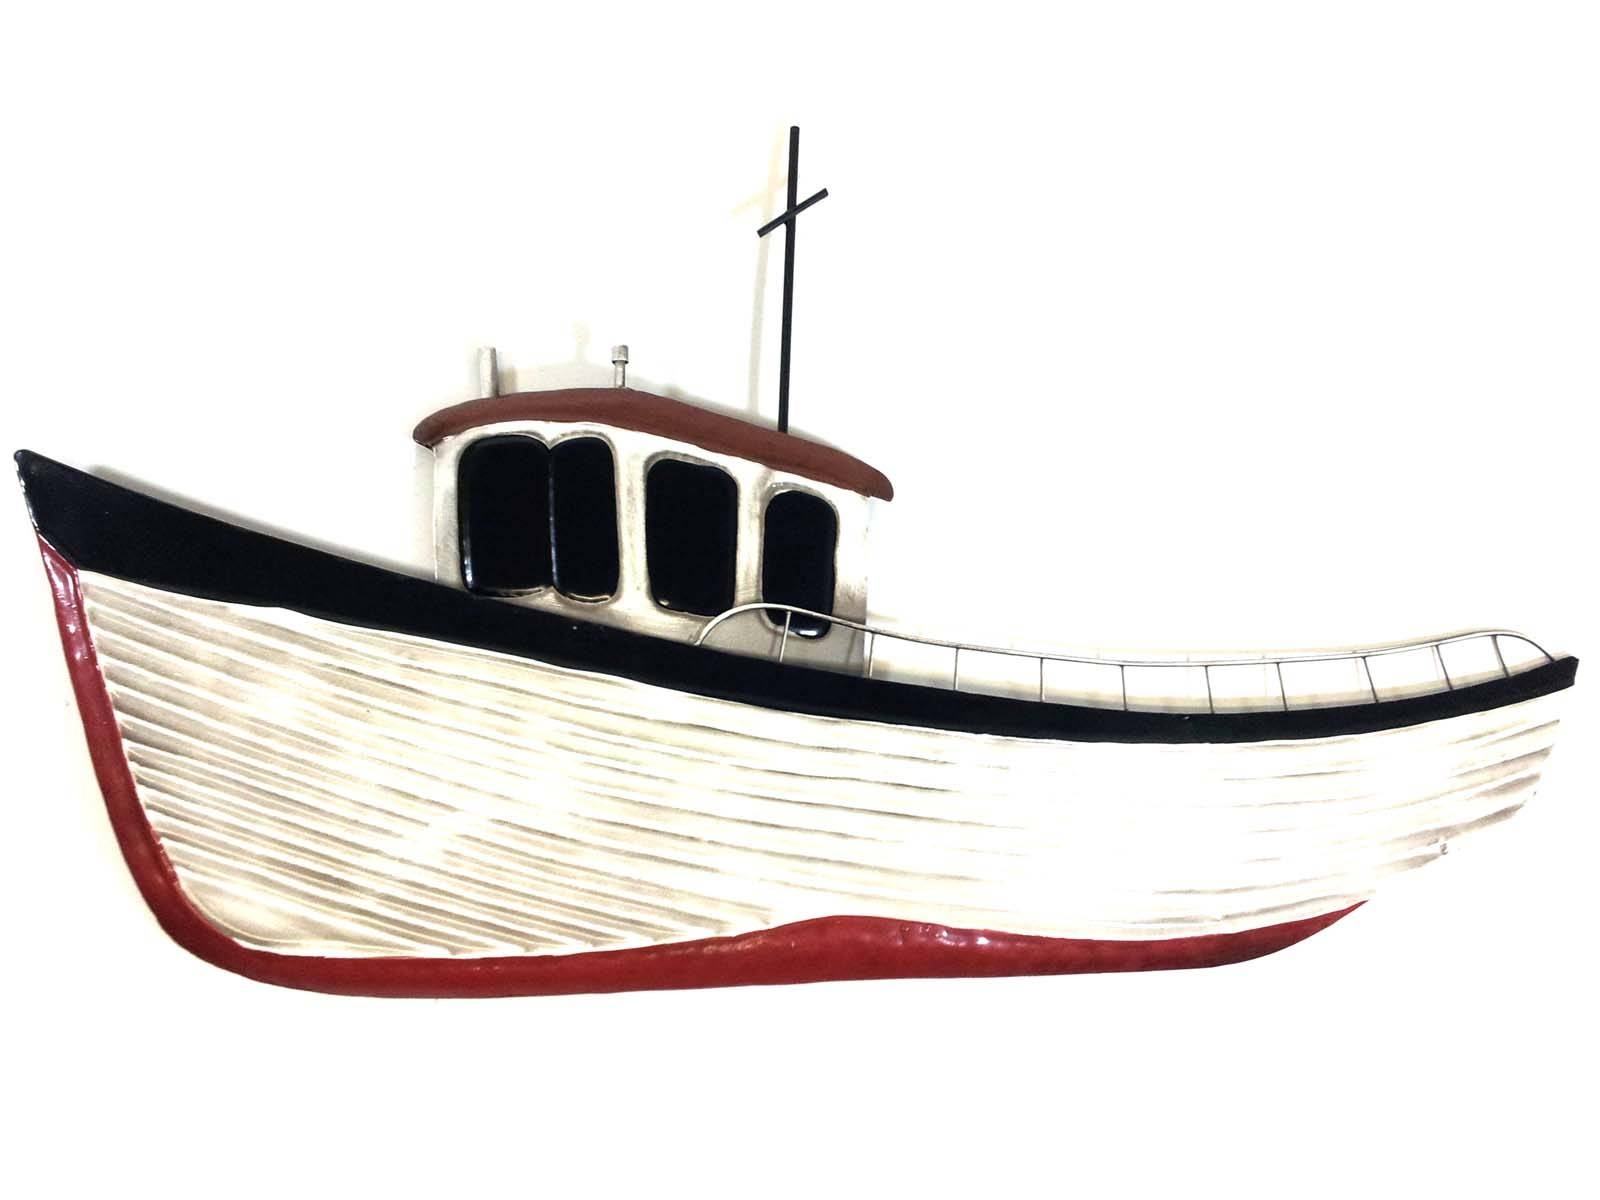 Metal Wall Art – Fishing Boat Intended For Most Recently Released Boat Wall Art (View 11 of 20)